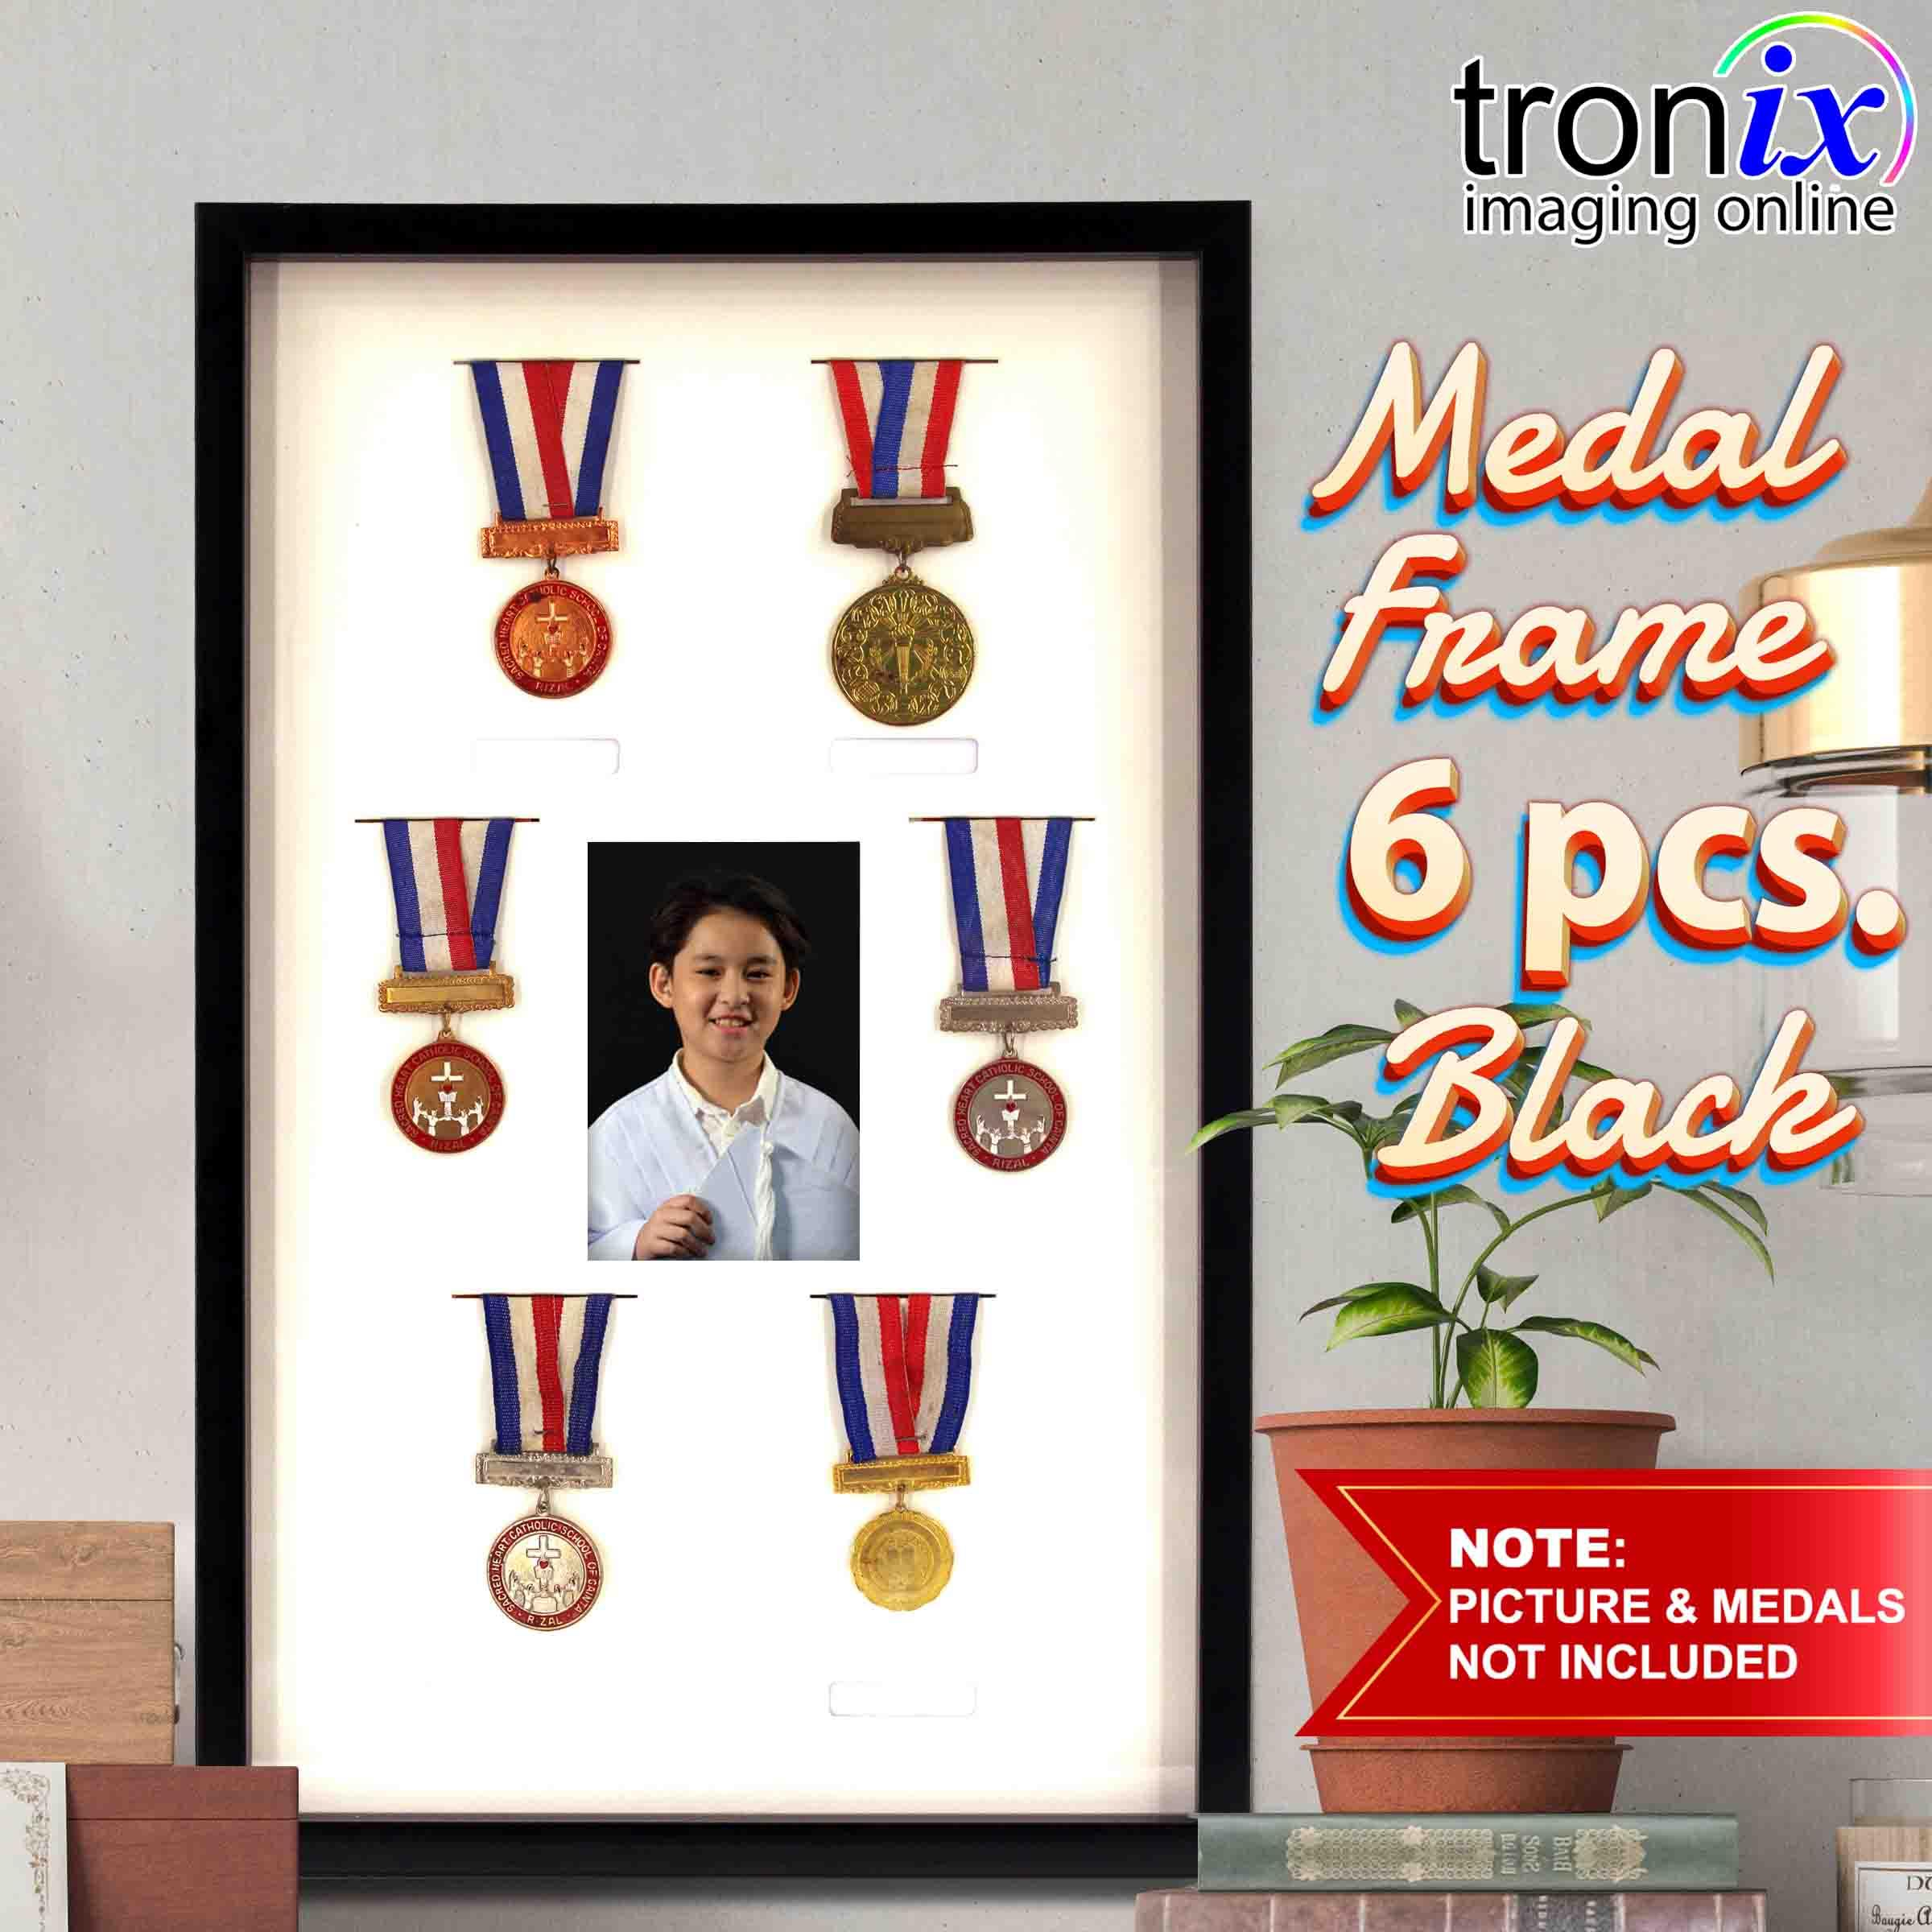 a1e691814d4 troniximaging Medal Frame 6pc. One(1) piece Medal Glass Frame for 6 pcs